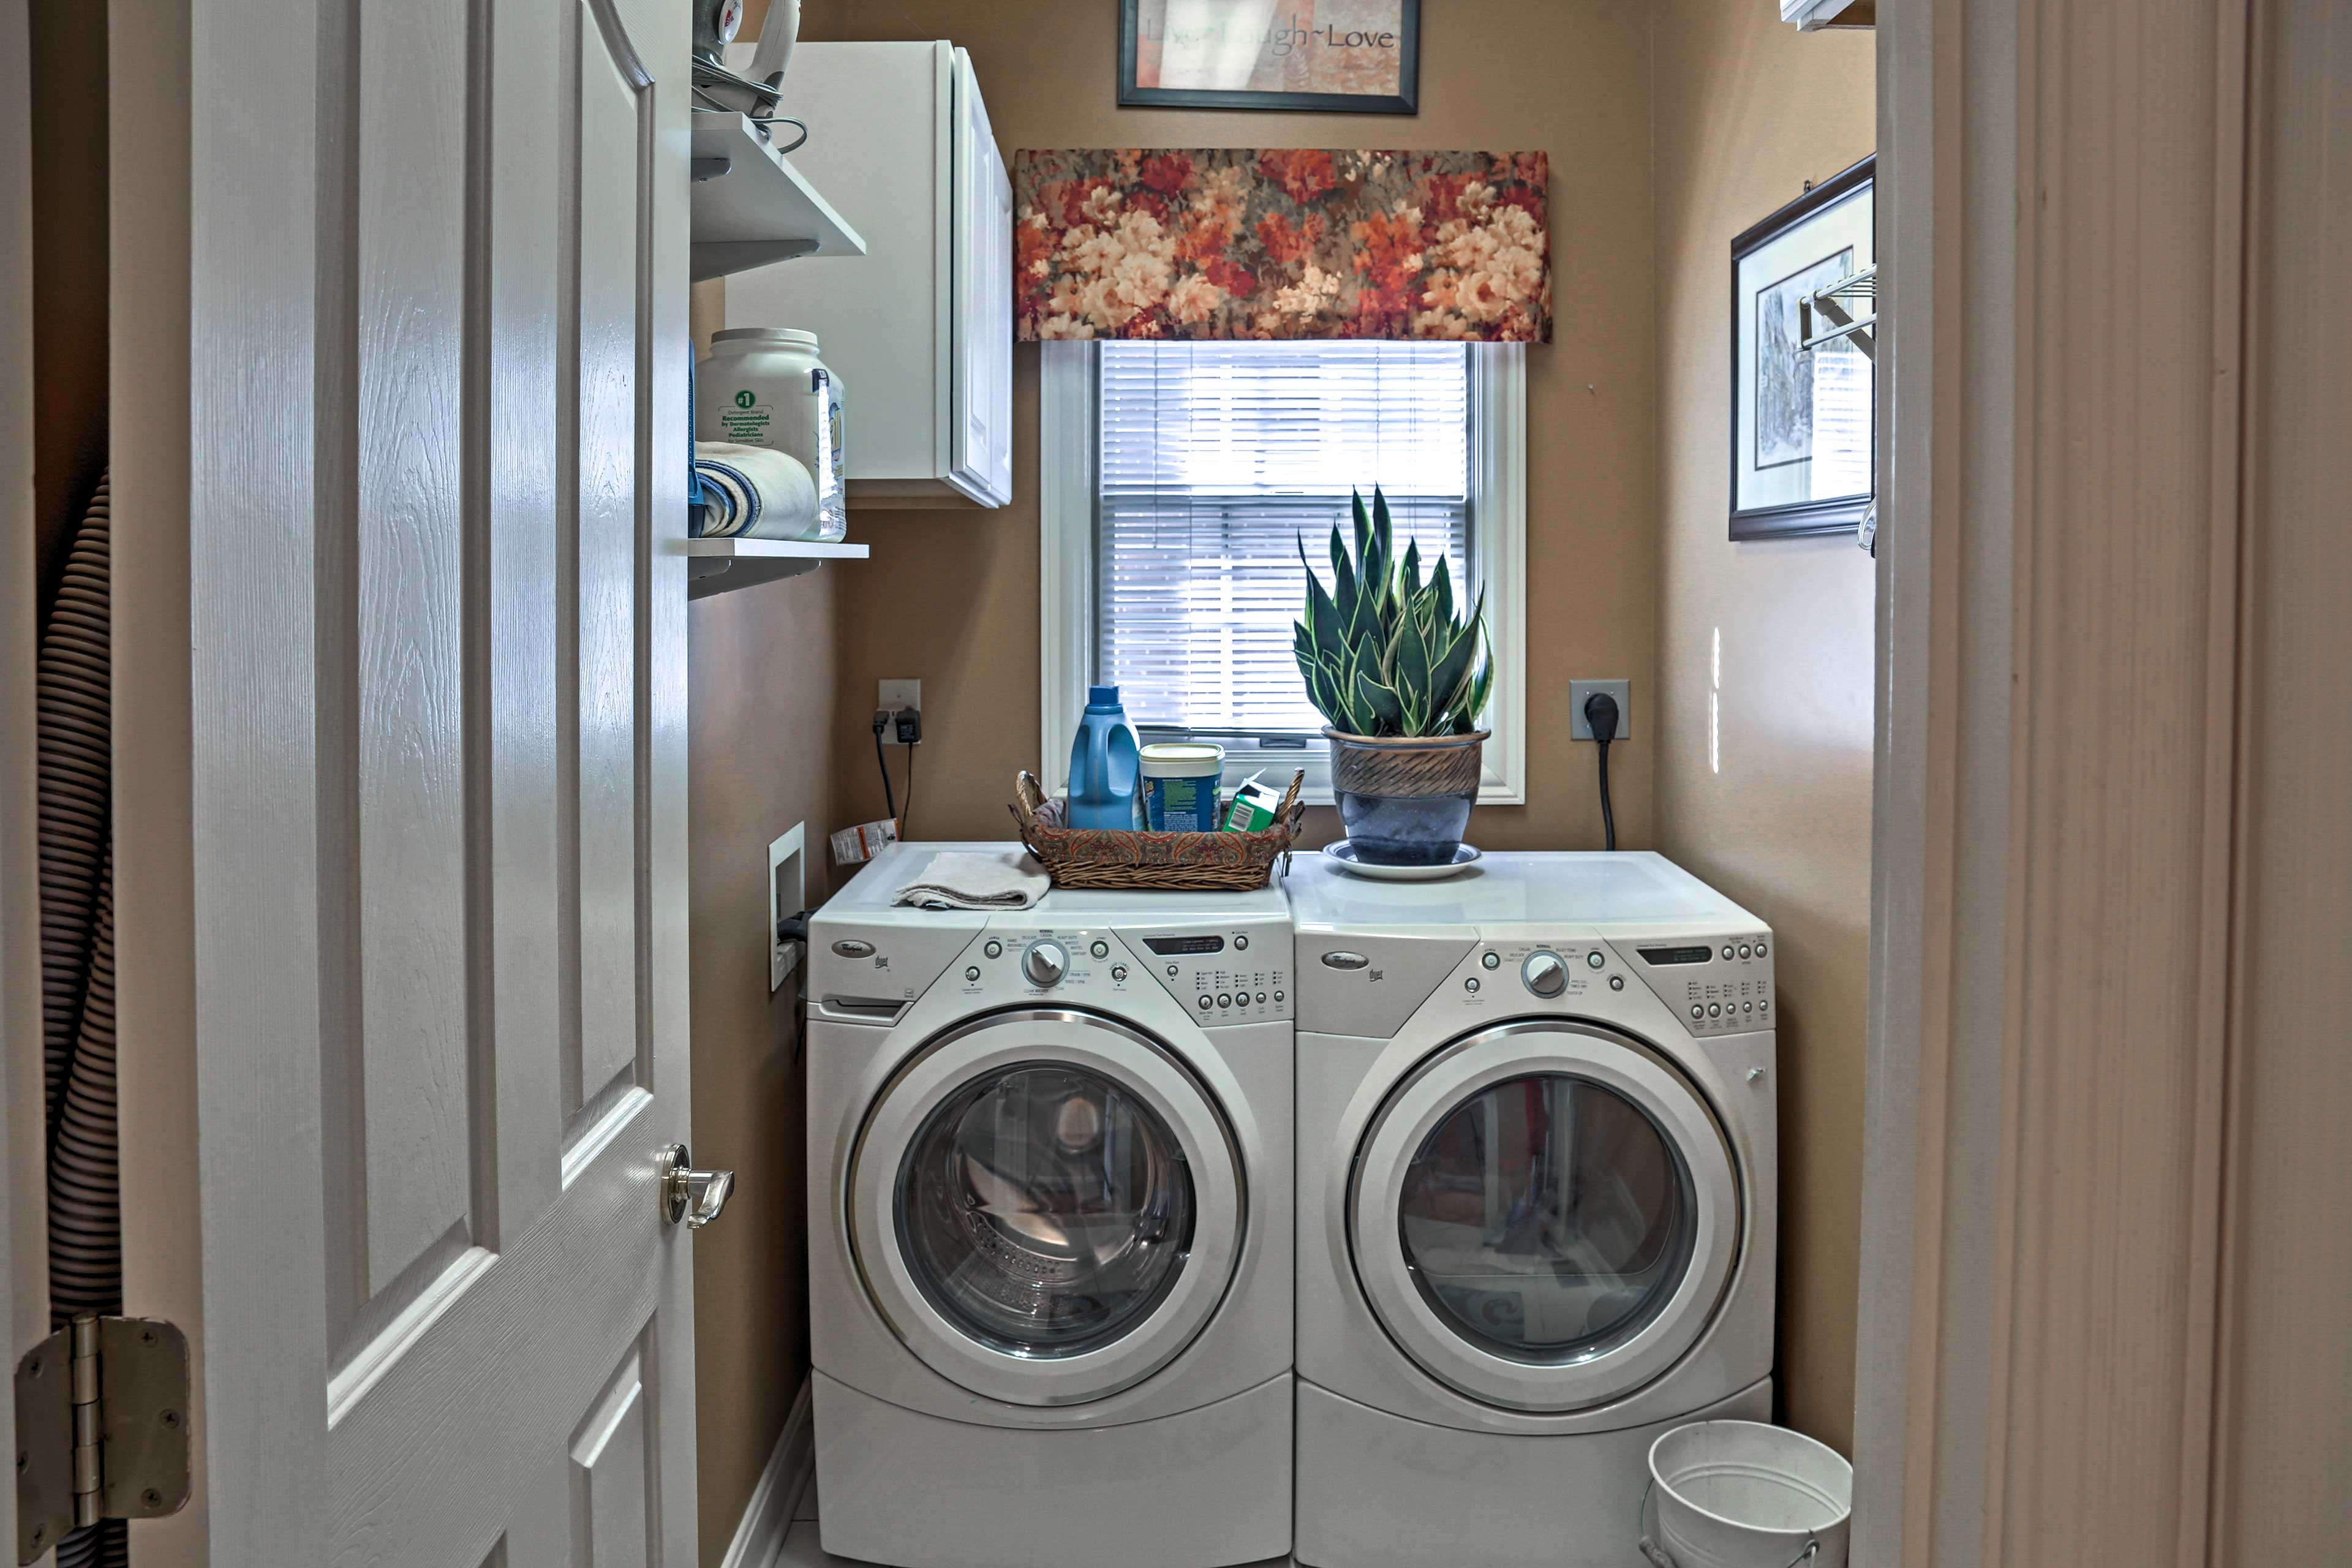 Keep your clothes fresh and clean during your stay.